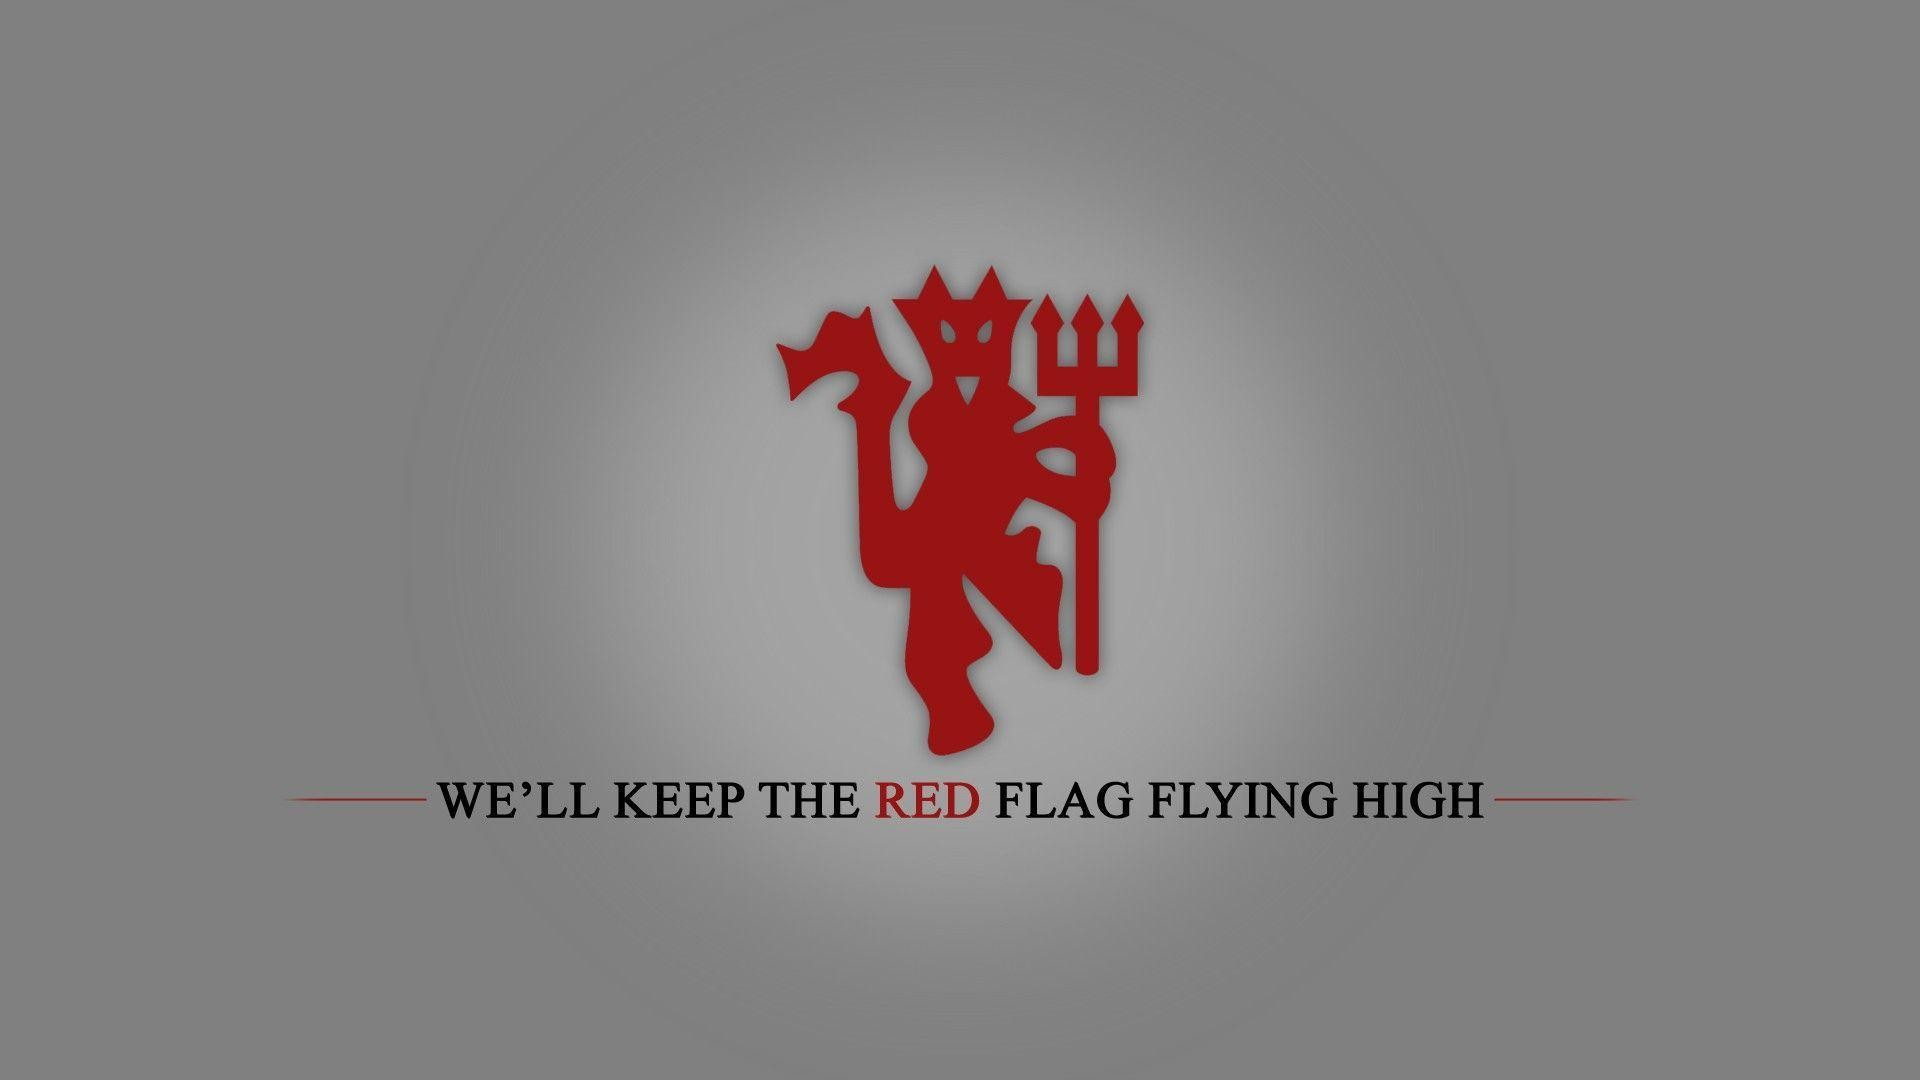 Red devil wallpaper 71 images 1920x1080 amusing red devil manchester united wallpapers voltagebd Gallery